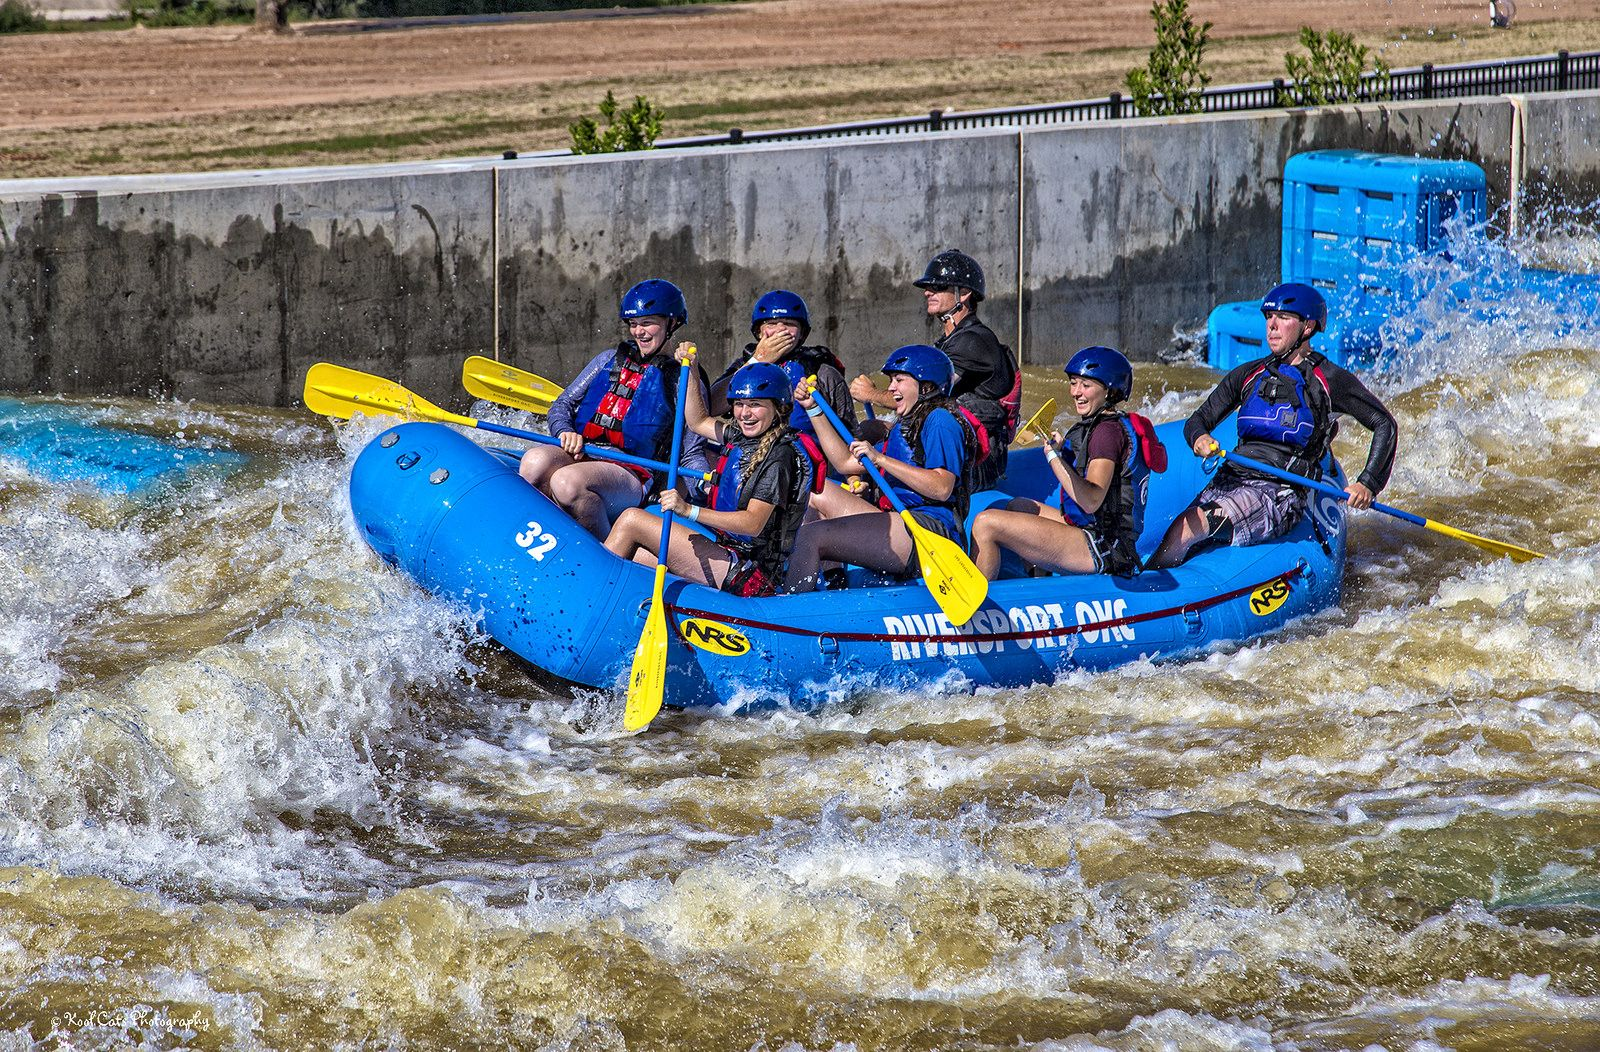 https://flic.kr/p/GYwwDx | Having a Great Day! | Riversport OKC white water rapids in Oklahoma City.